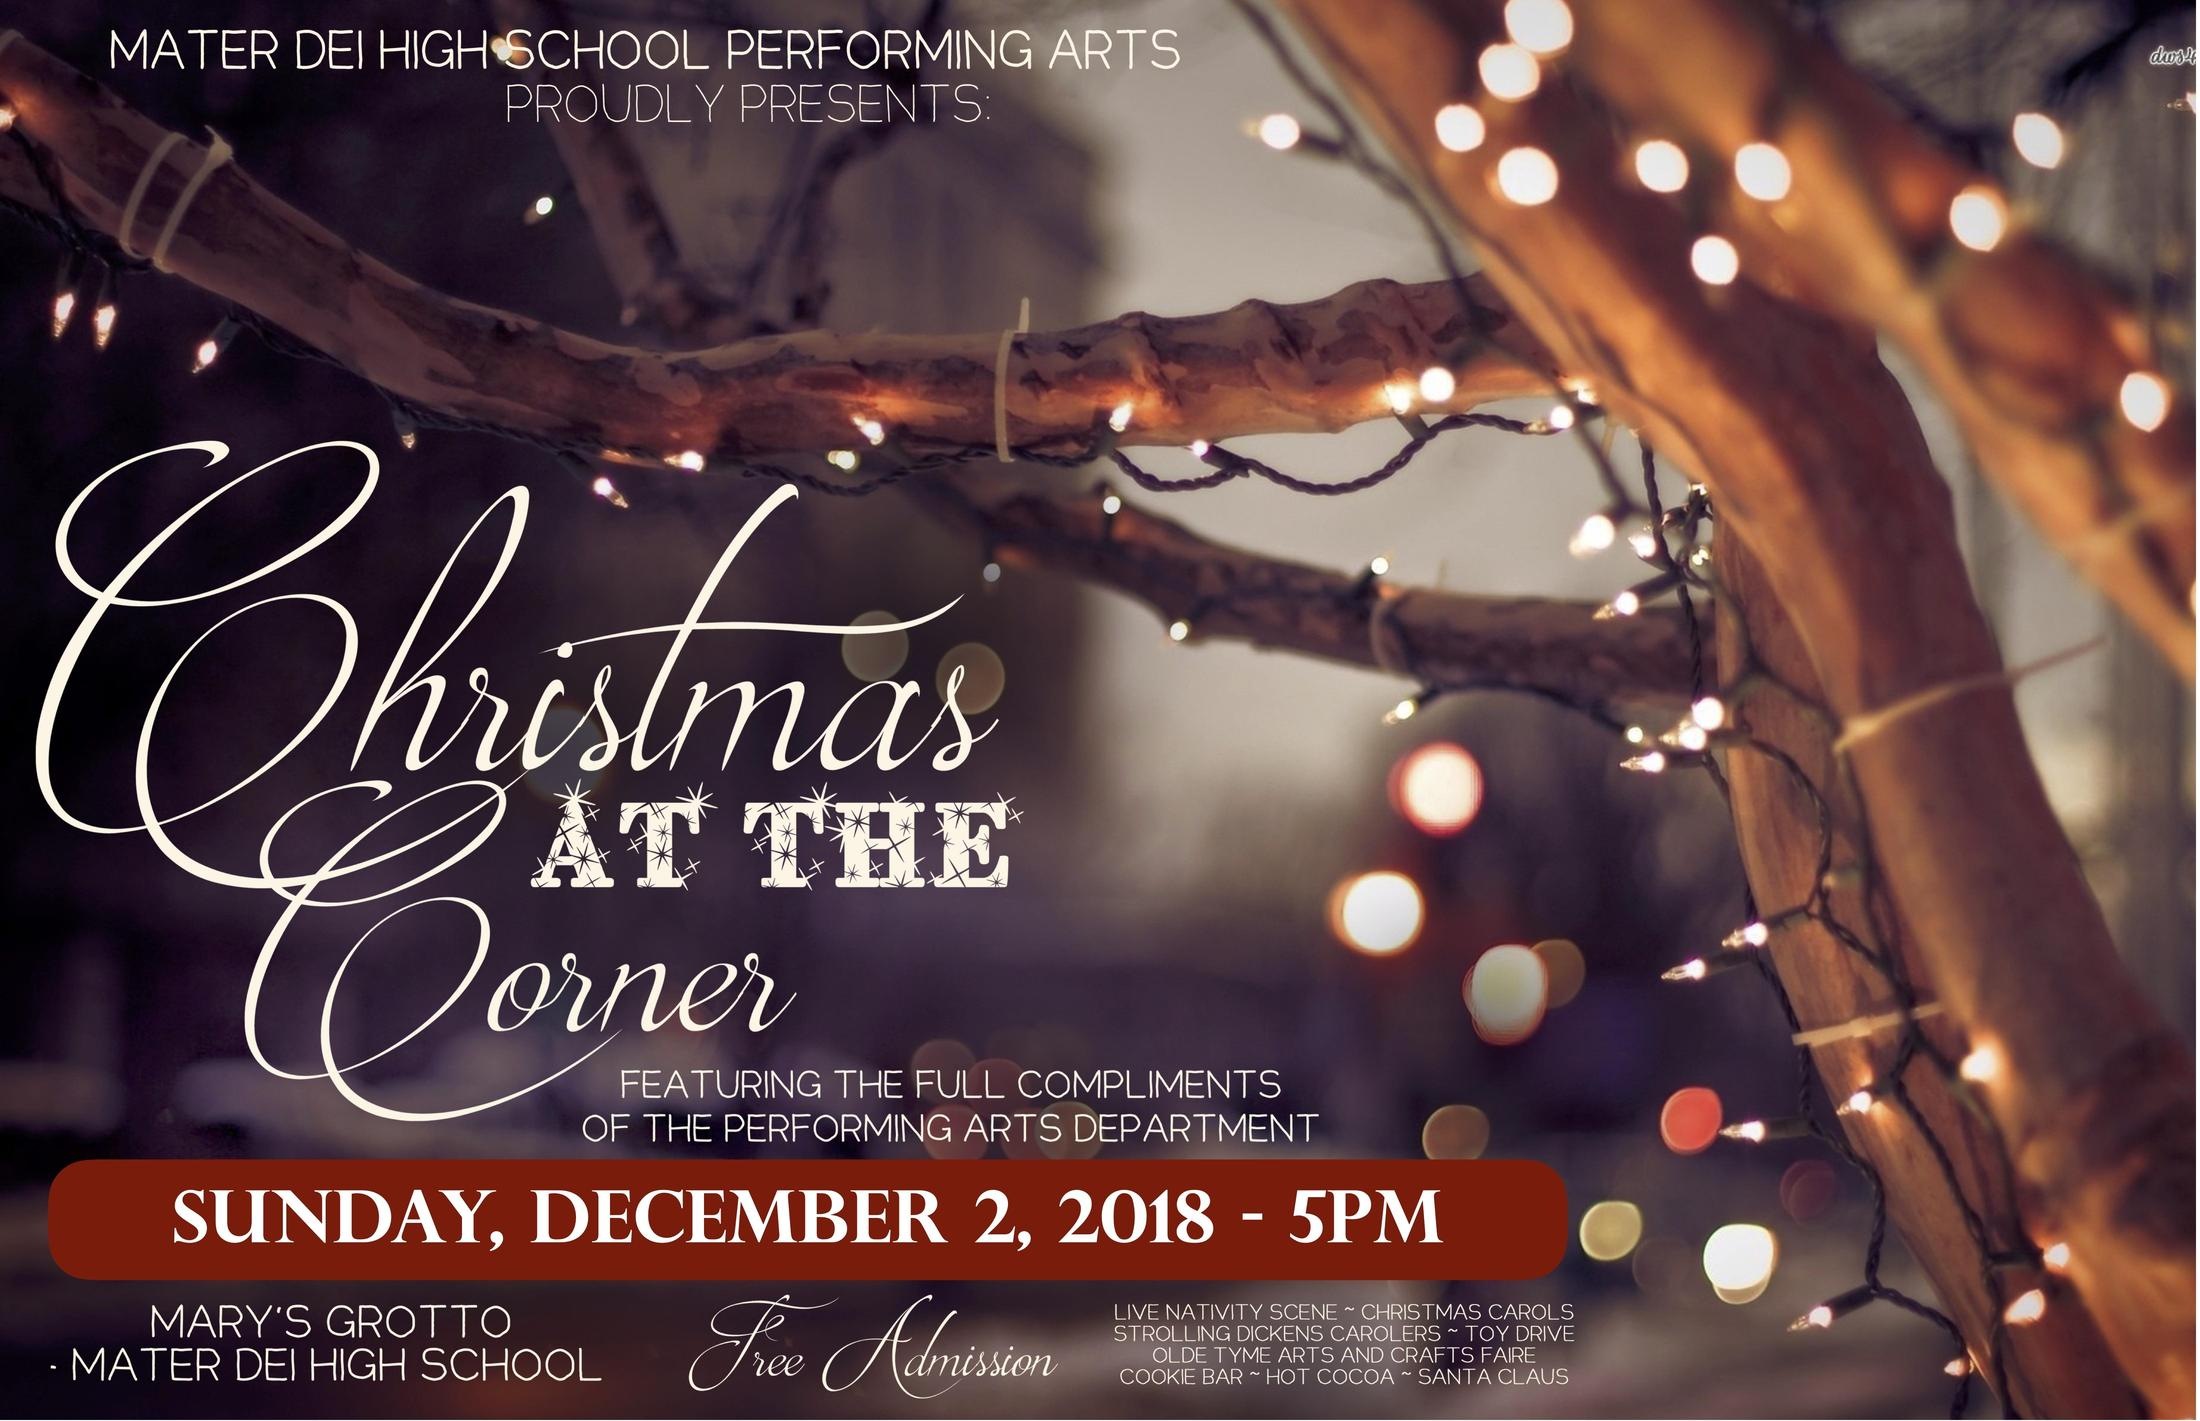 Christmas At The Corner Performing Arts Mater Dei High School